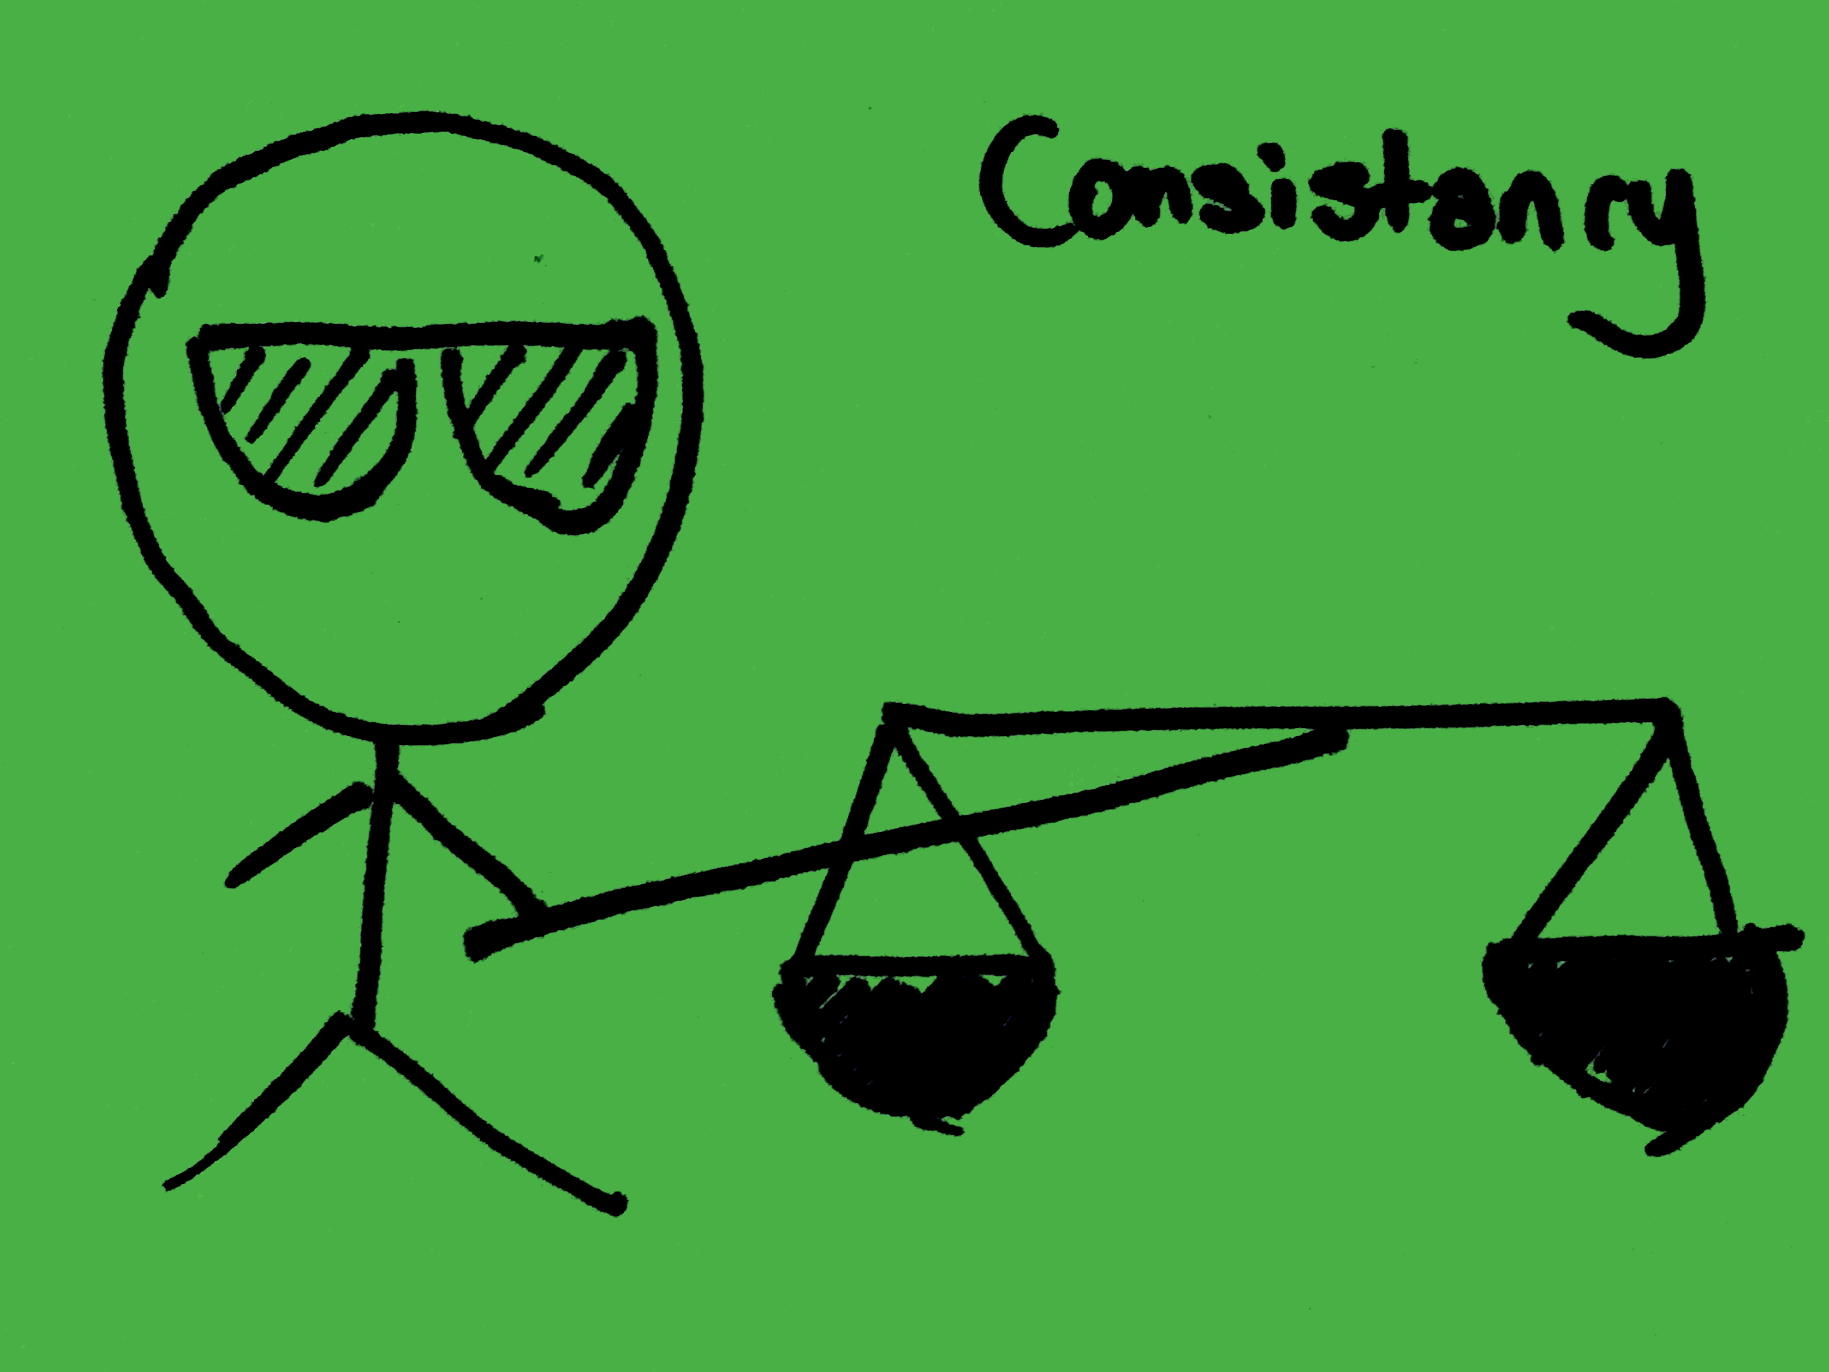 Consistency Strengthsfinder Sunglasses guy Weighing